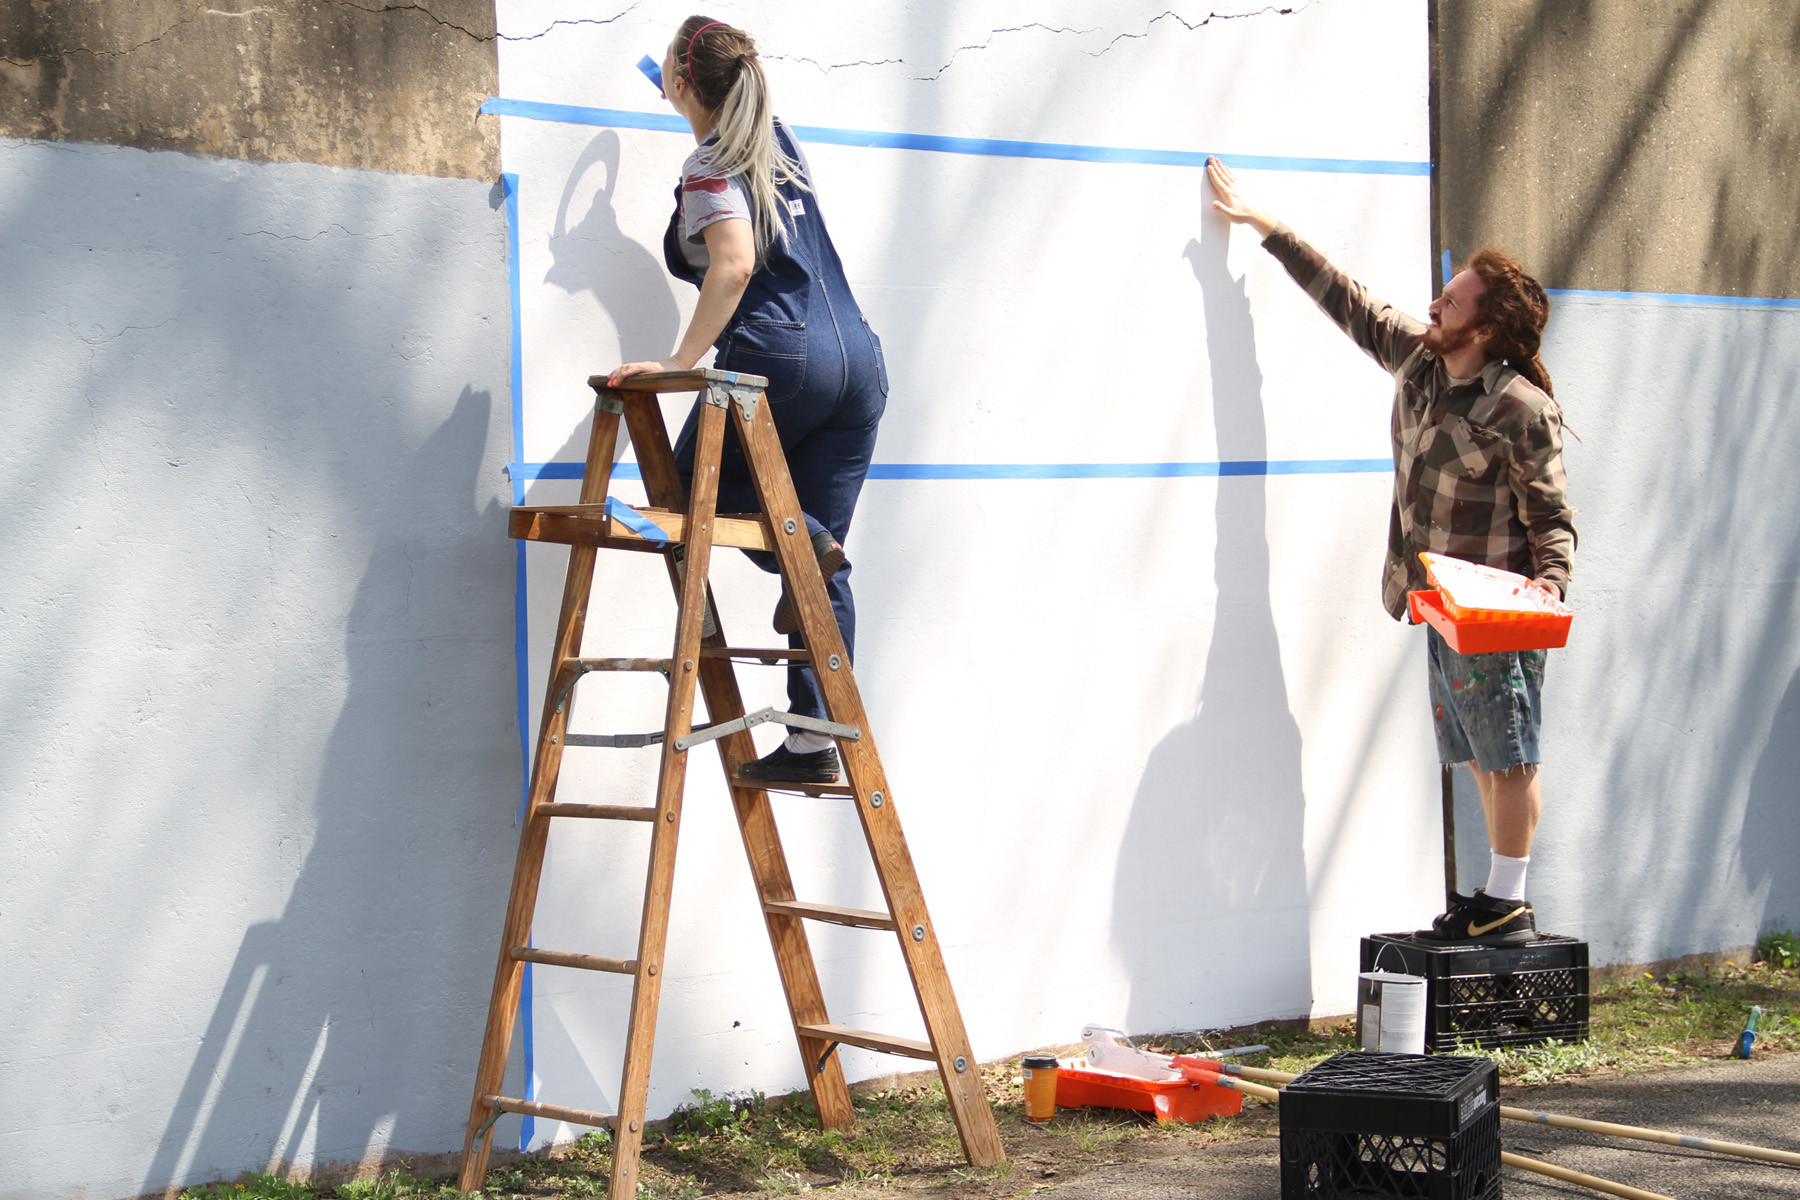 Artists Brittany Ruhnke and Christopher Berger prepared the trestle wall for the mural.